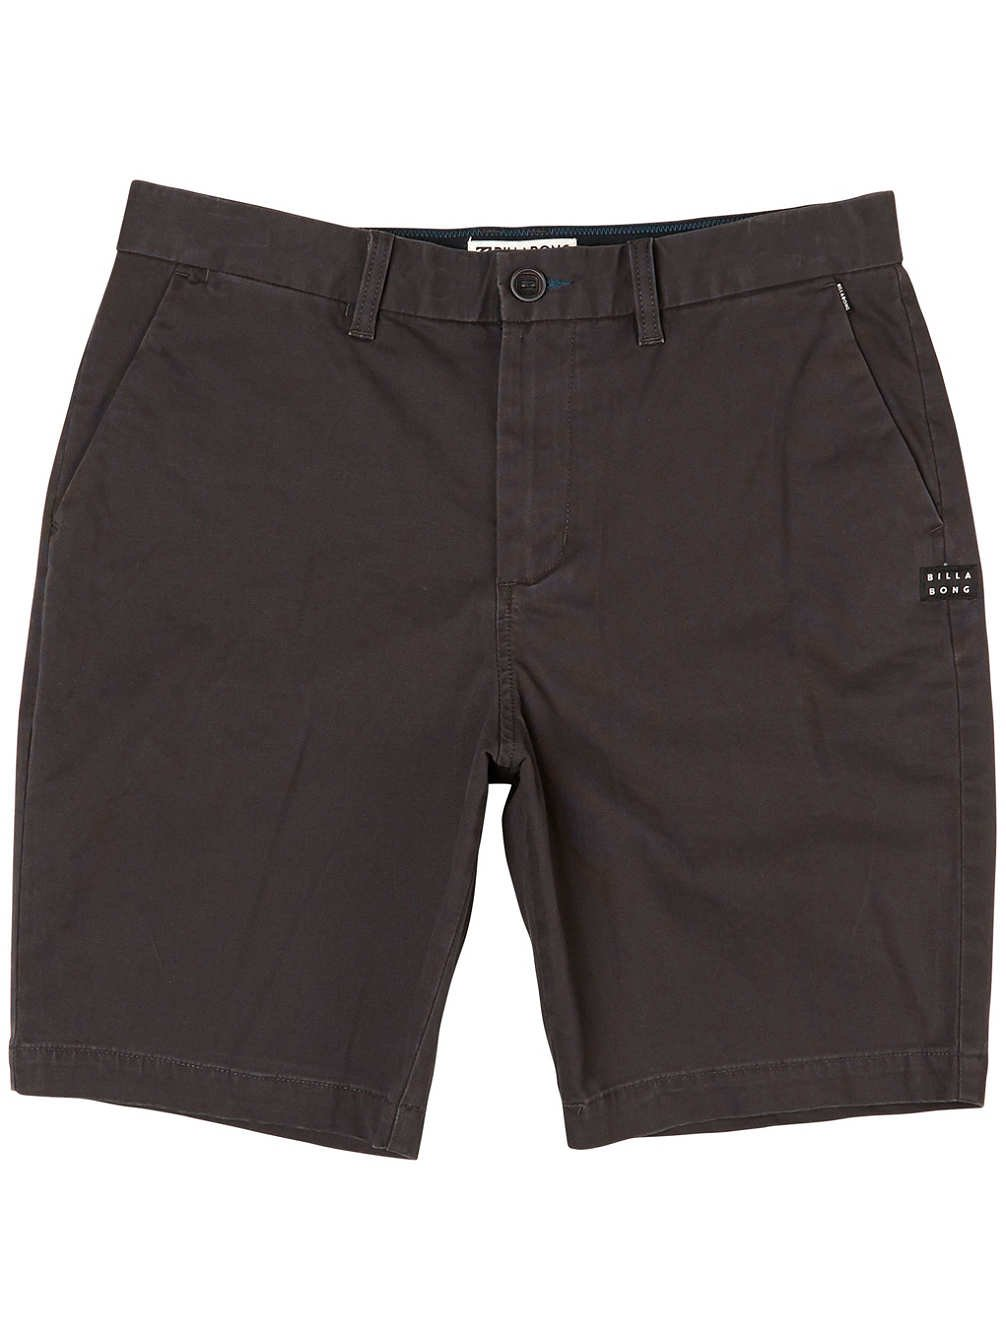 G.S.M. - Europe - G.S.M. Billabong Herren New Order Hose 9e7876